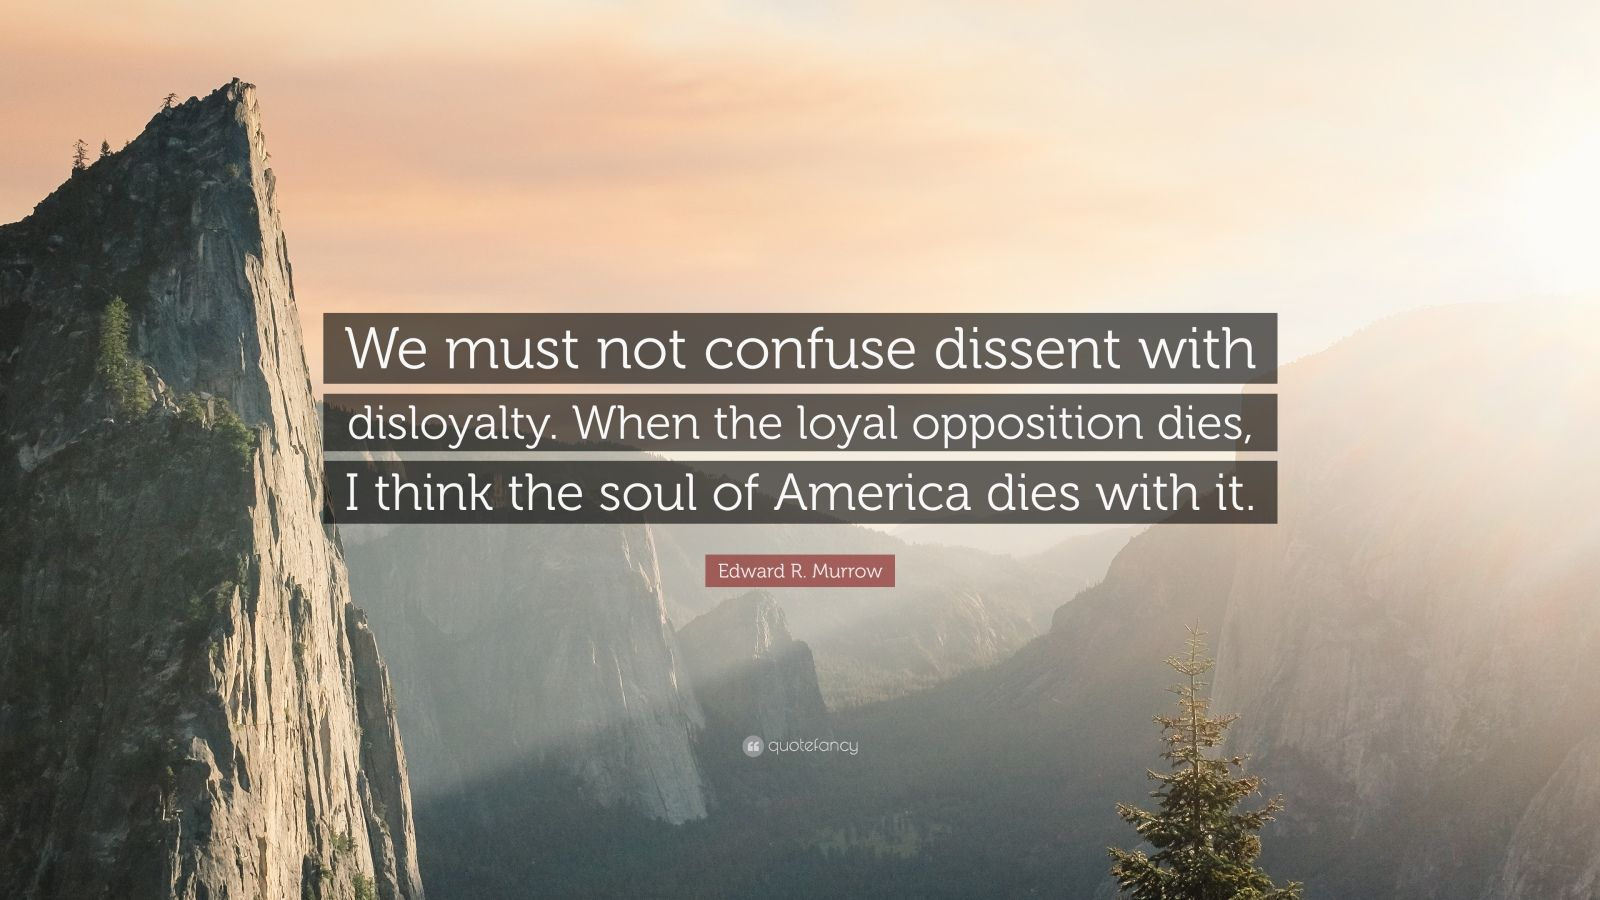 """Edward R. Murrow Quote: """"We must not confuse dissent with disloyalty. When the loyal opposition dies, I think the soul of America dies with it."""""""